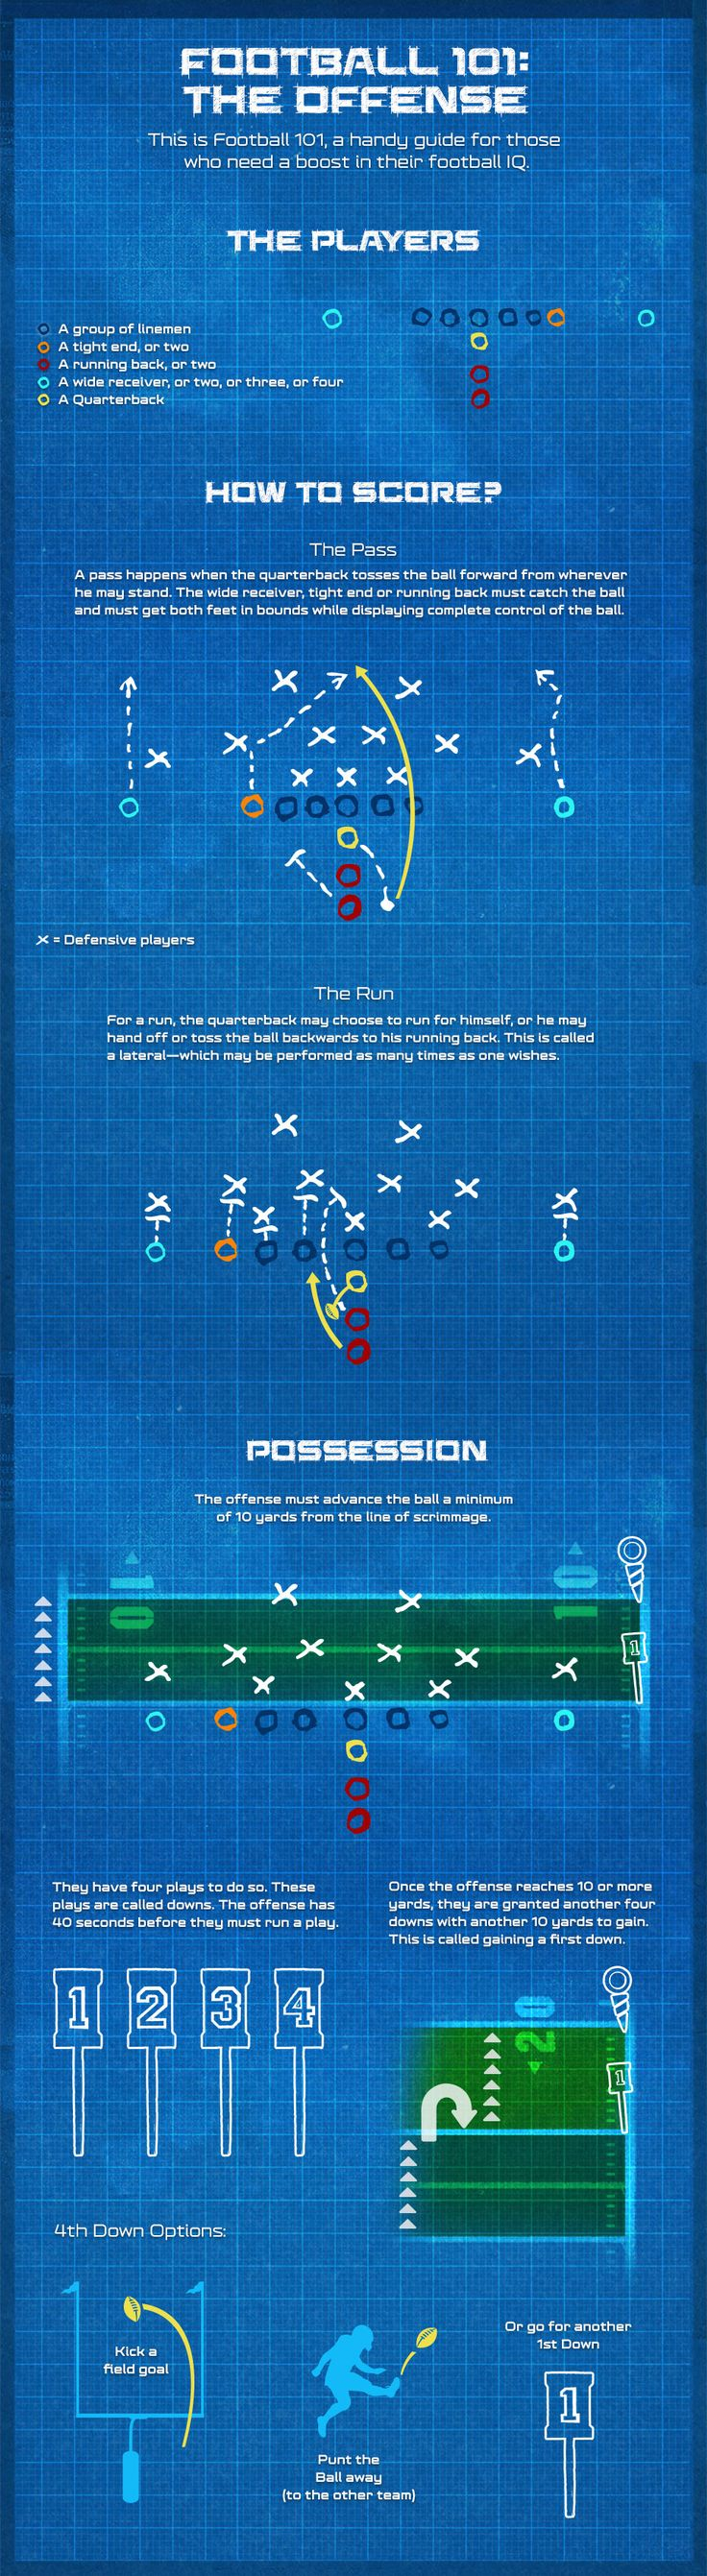 Care to brush up on your football knowledge?  Check out our handy video and infographic that explains the basics of the offense.